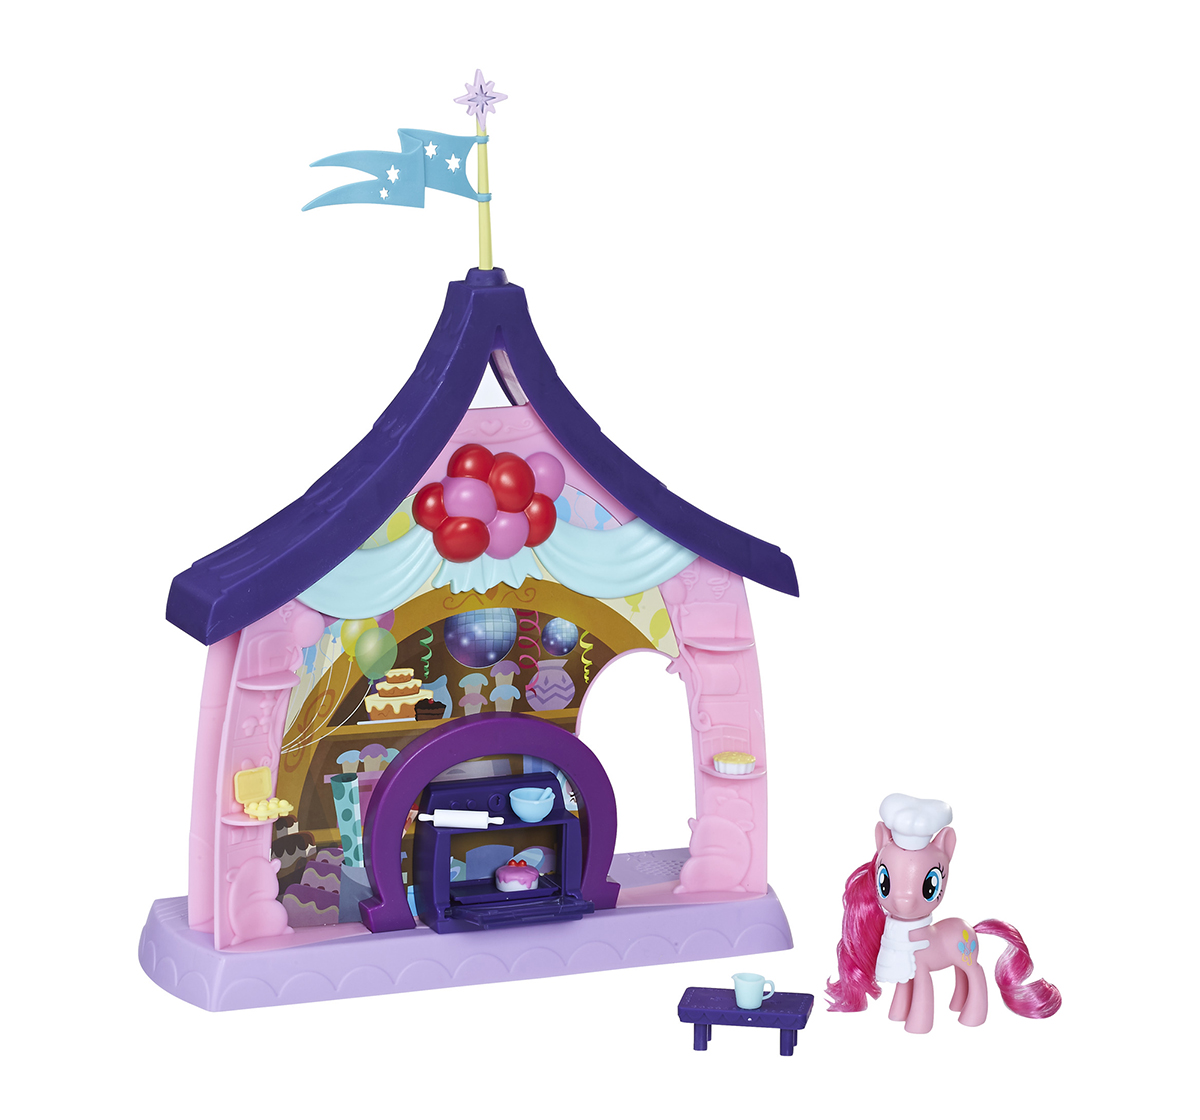 My Little Pony | My Little Pony Pinkie Pie Beats & Treats Magical Classroom Collectible Dolls for Girls age 3Y+